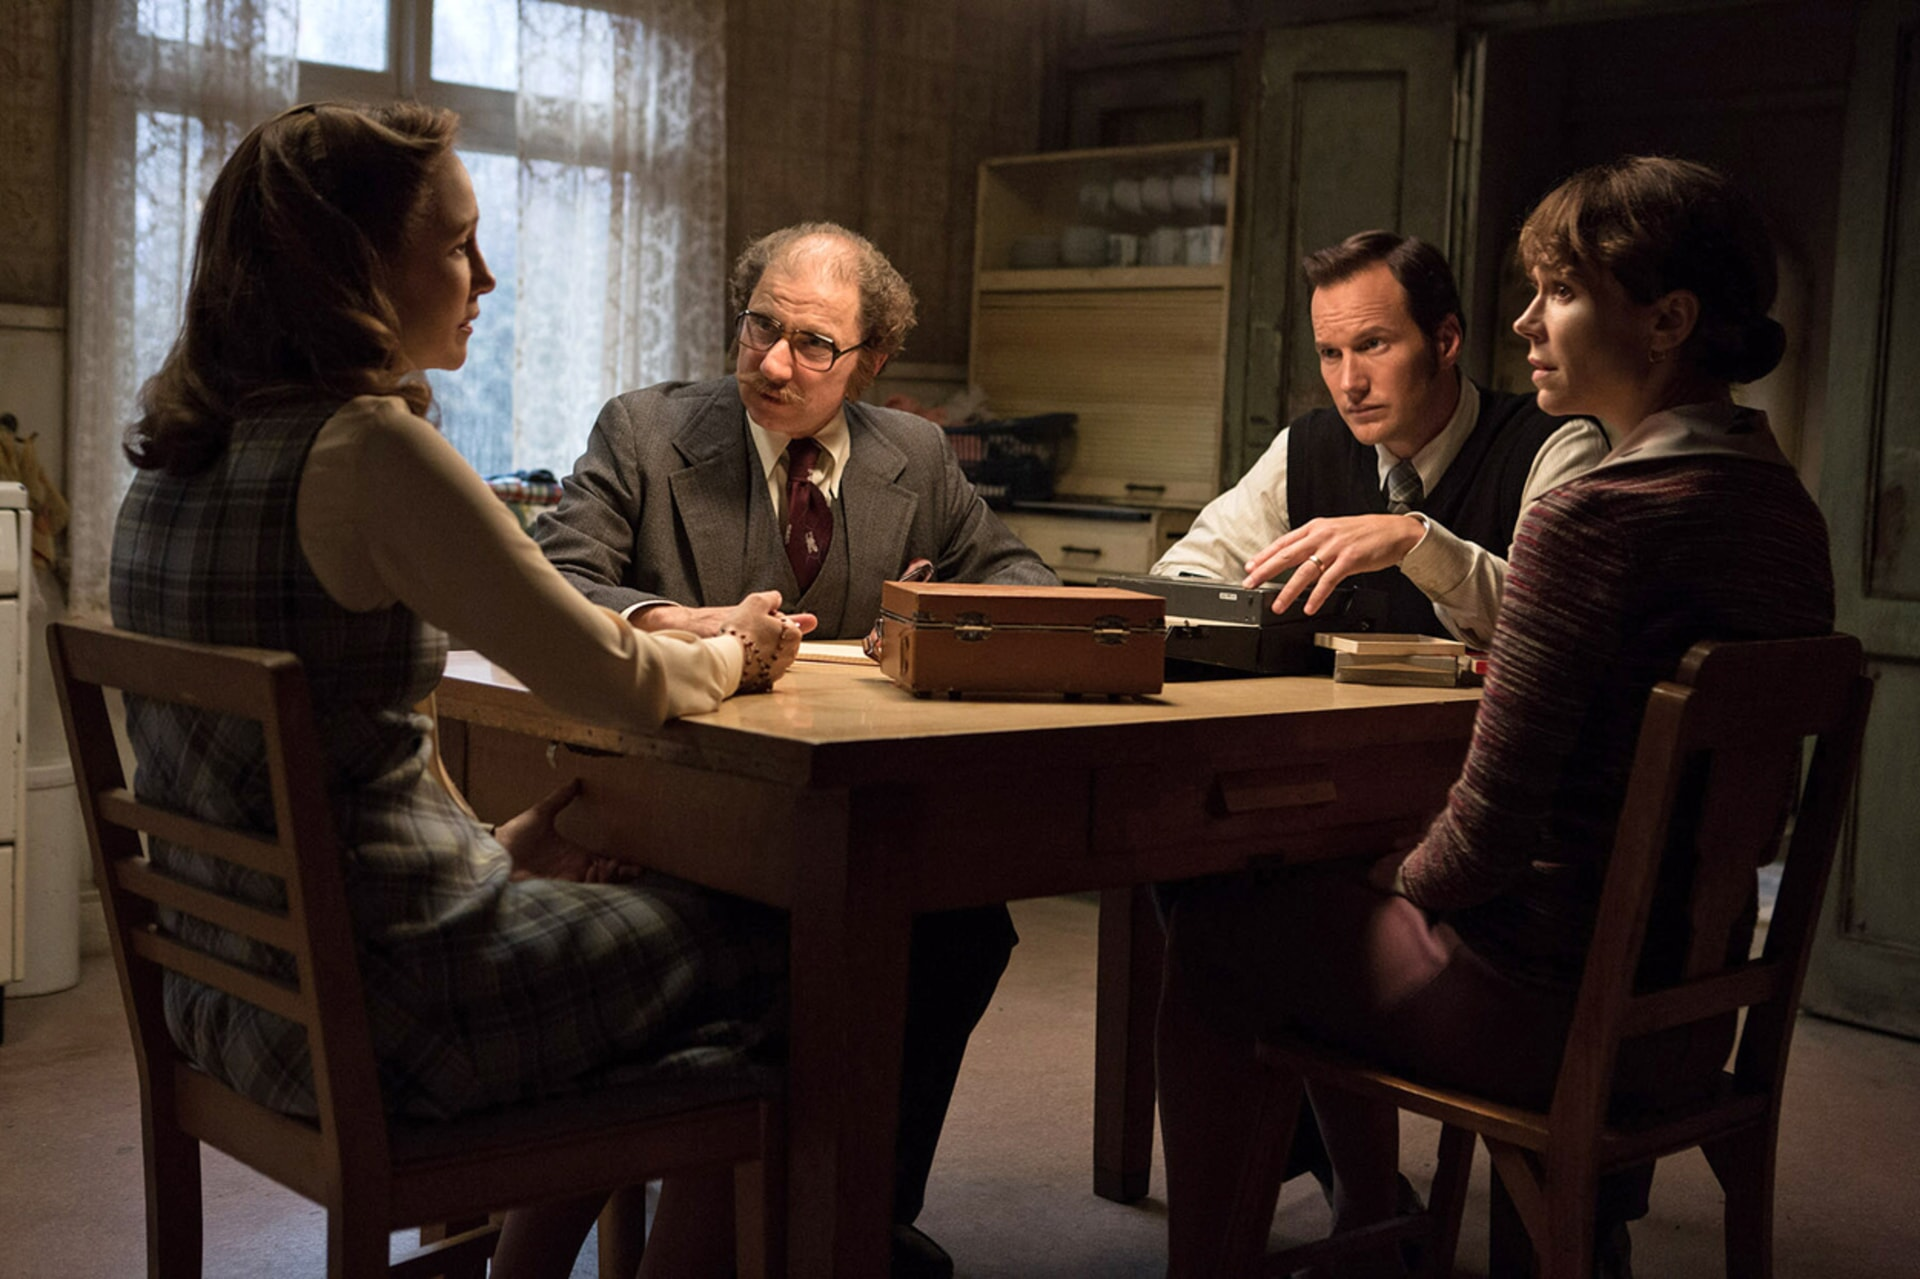 """VERA FARMIGA as Lorraine Warren, SIMON McBURNEY as Maurice Grosse, PATRICK WILSON as Ed Warren and FRANCES O'CONNOR as Peggy Hodgson, in New Line Cinema's supernatural thriller """"THE CONJURING 2,"""" a Warner Bros. Pictures release."""